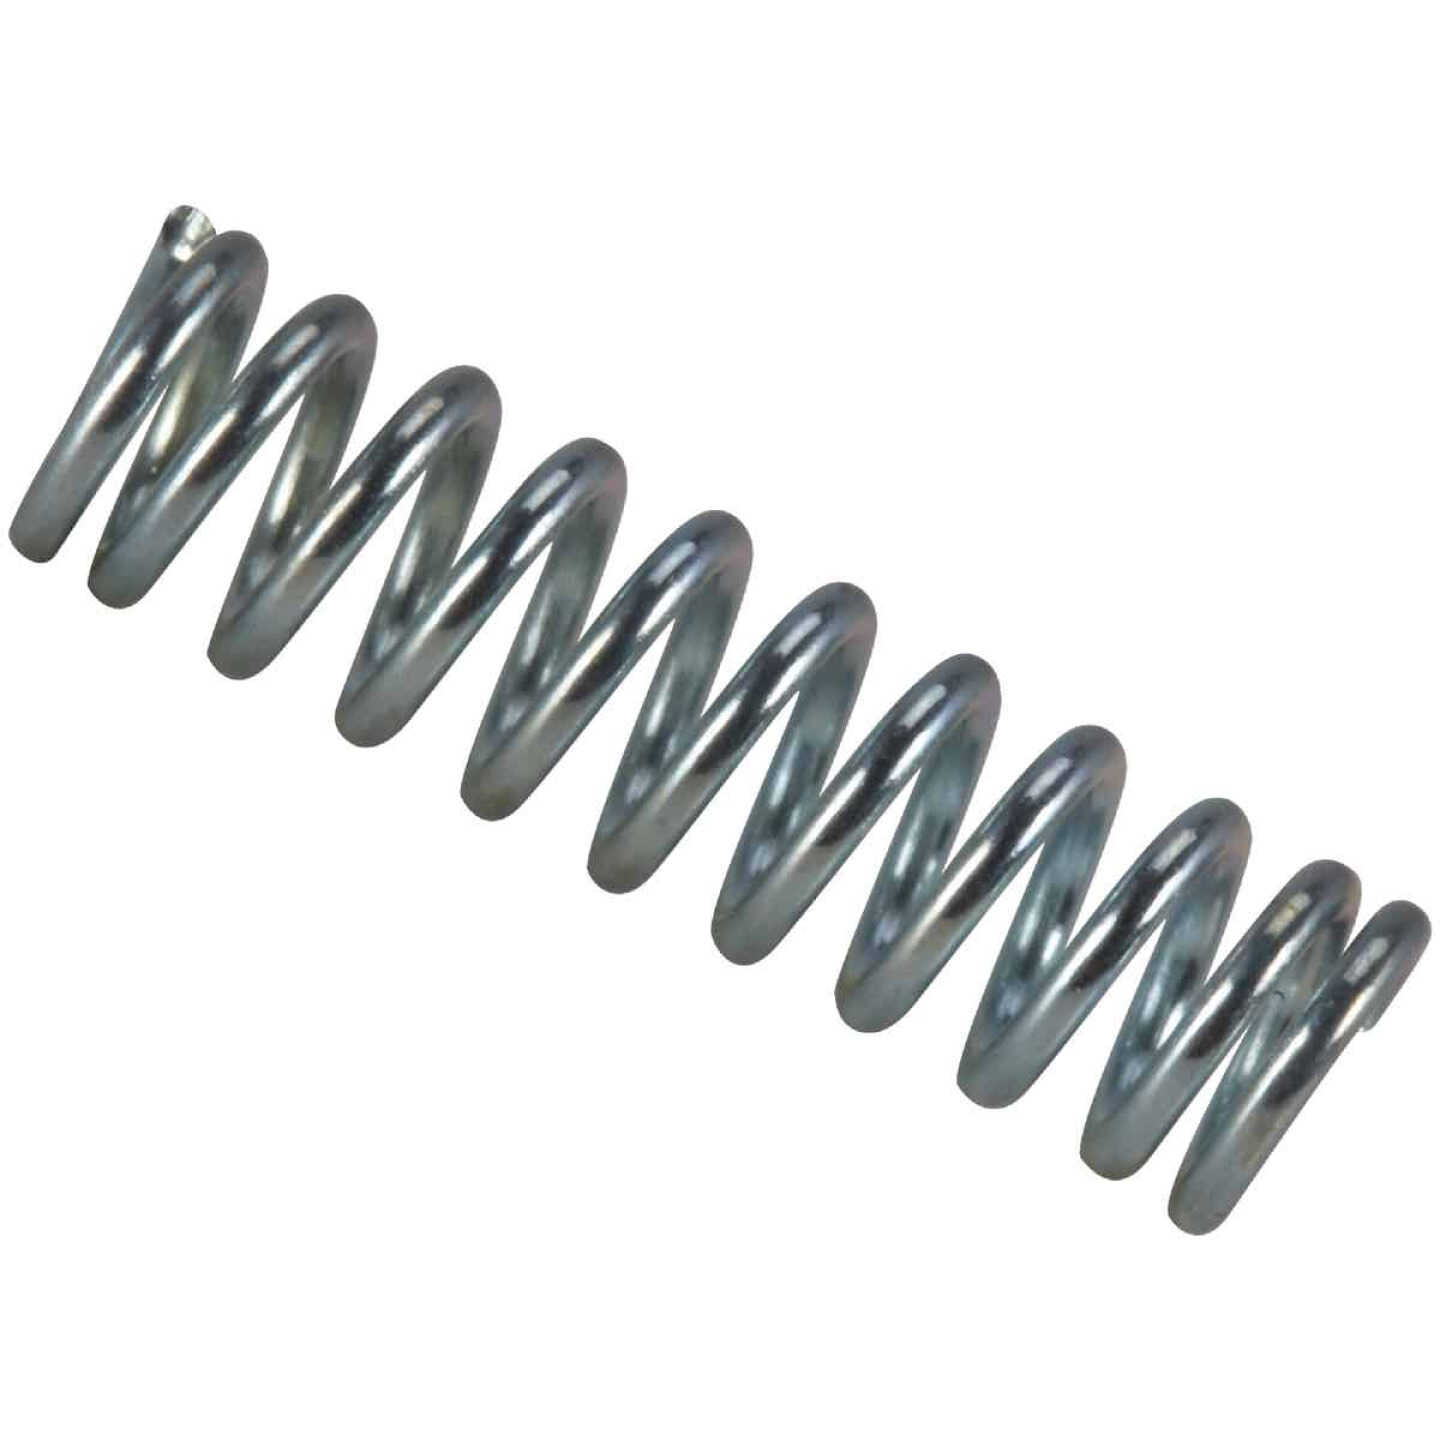 Century Spring 1-3/8 In. x 3/16 In. Compression Spring (6 Count) Image 1